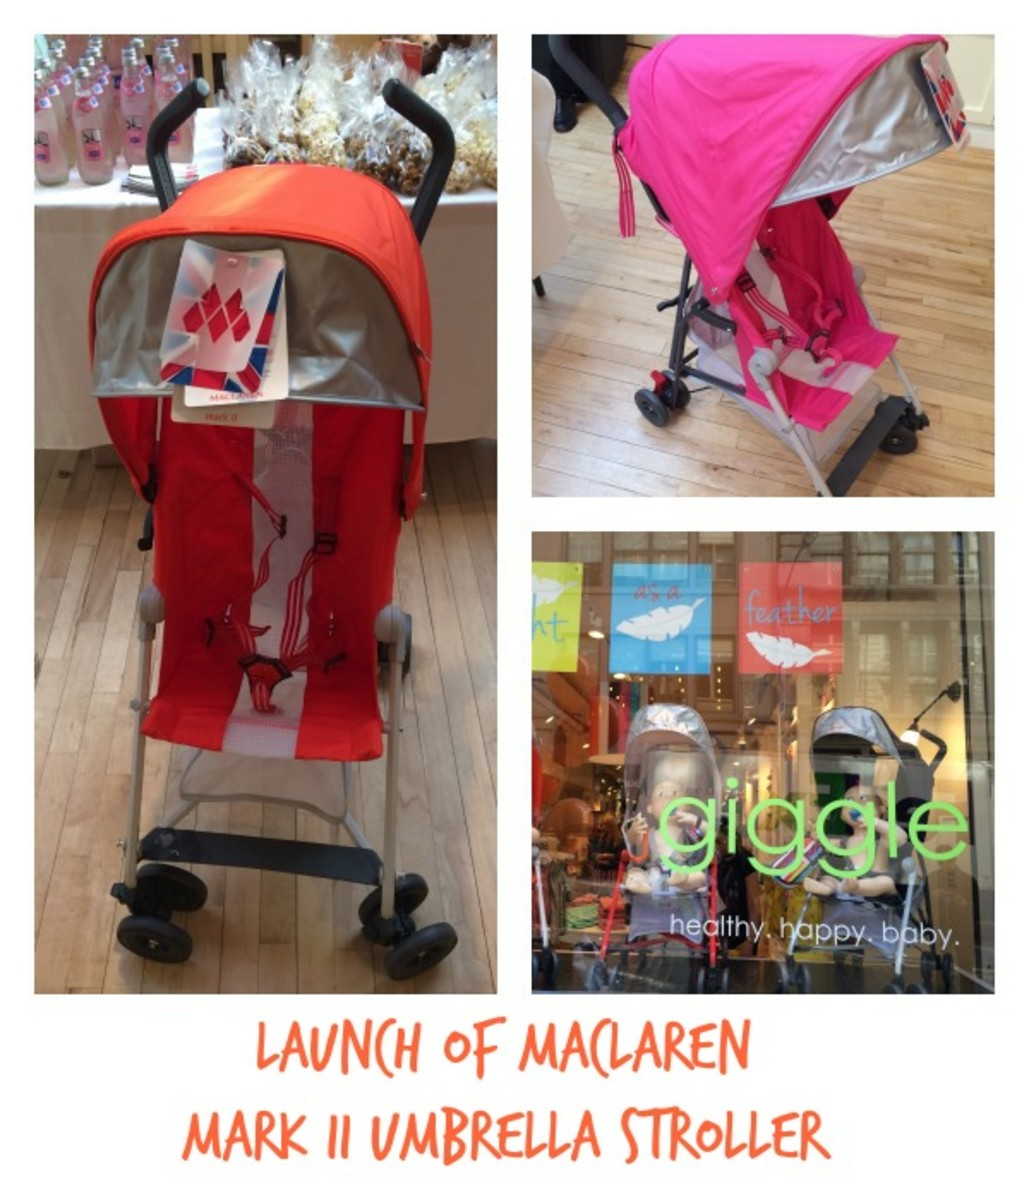 Launch of Maclaren Mark II Umbrella Stroller